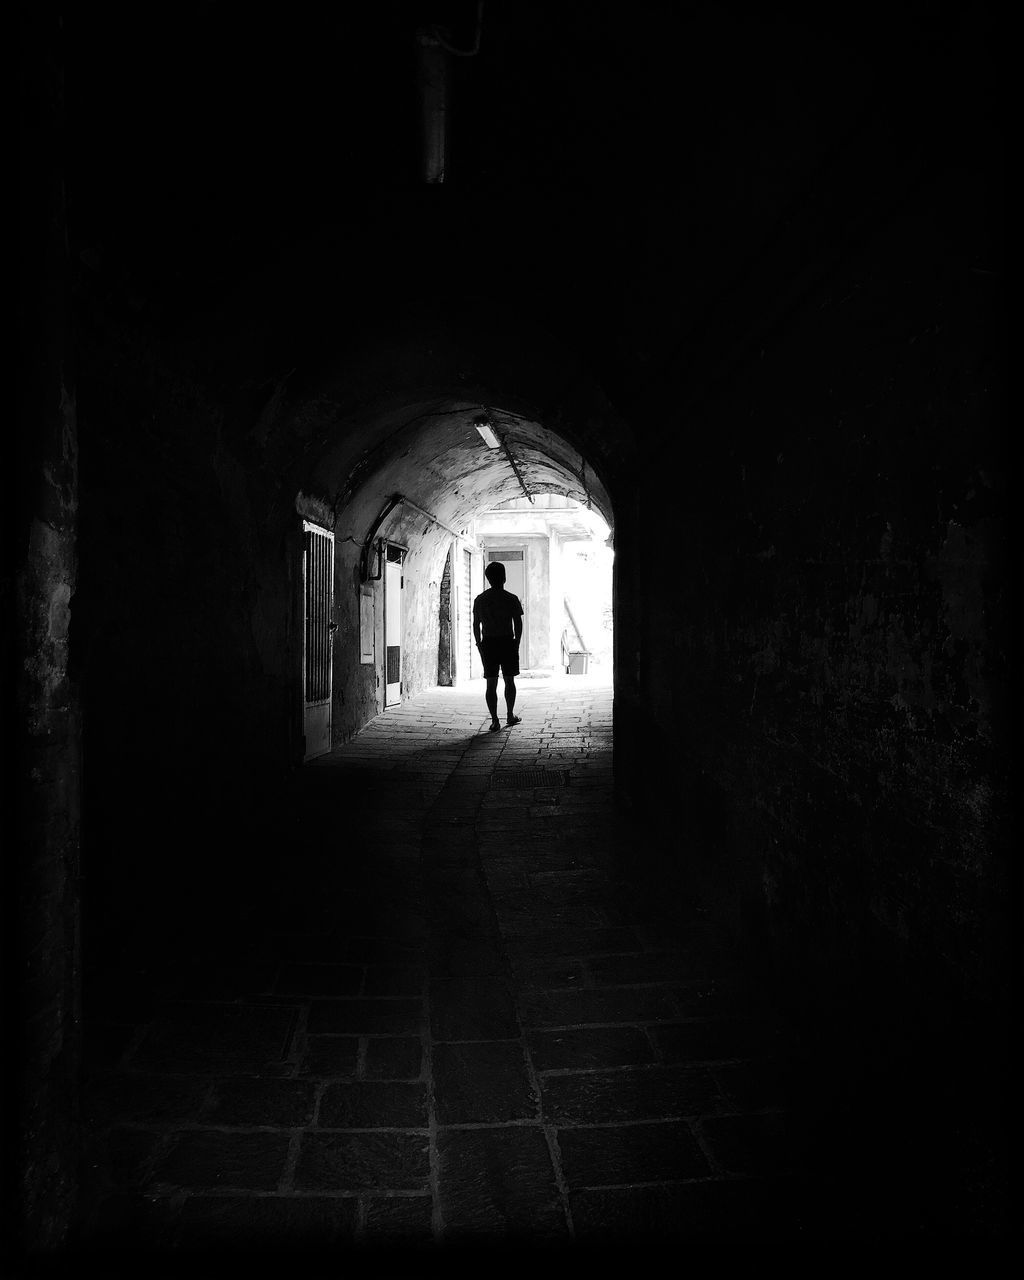 architecture, arch, built structure, the way forward, one person, direction, tunnel, full length, indoors, real people, building, lifestyles, walking, men, light at the end of the tunnel, silhouette, day, leisure activity, rear view, dark, arched